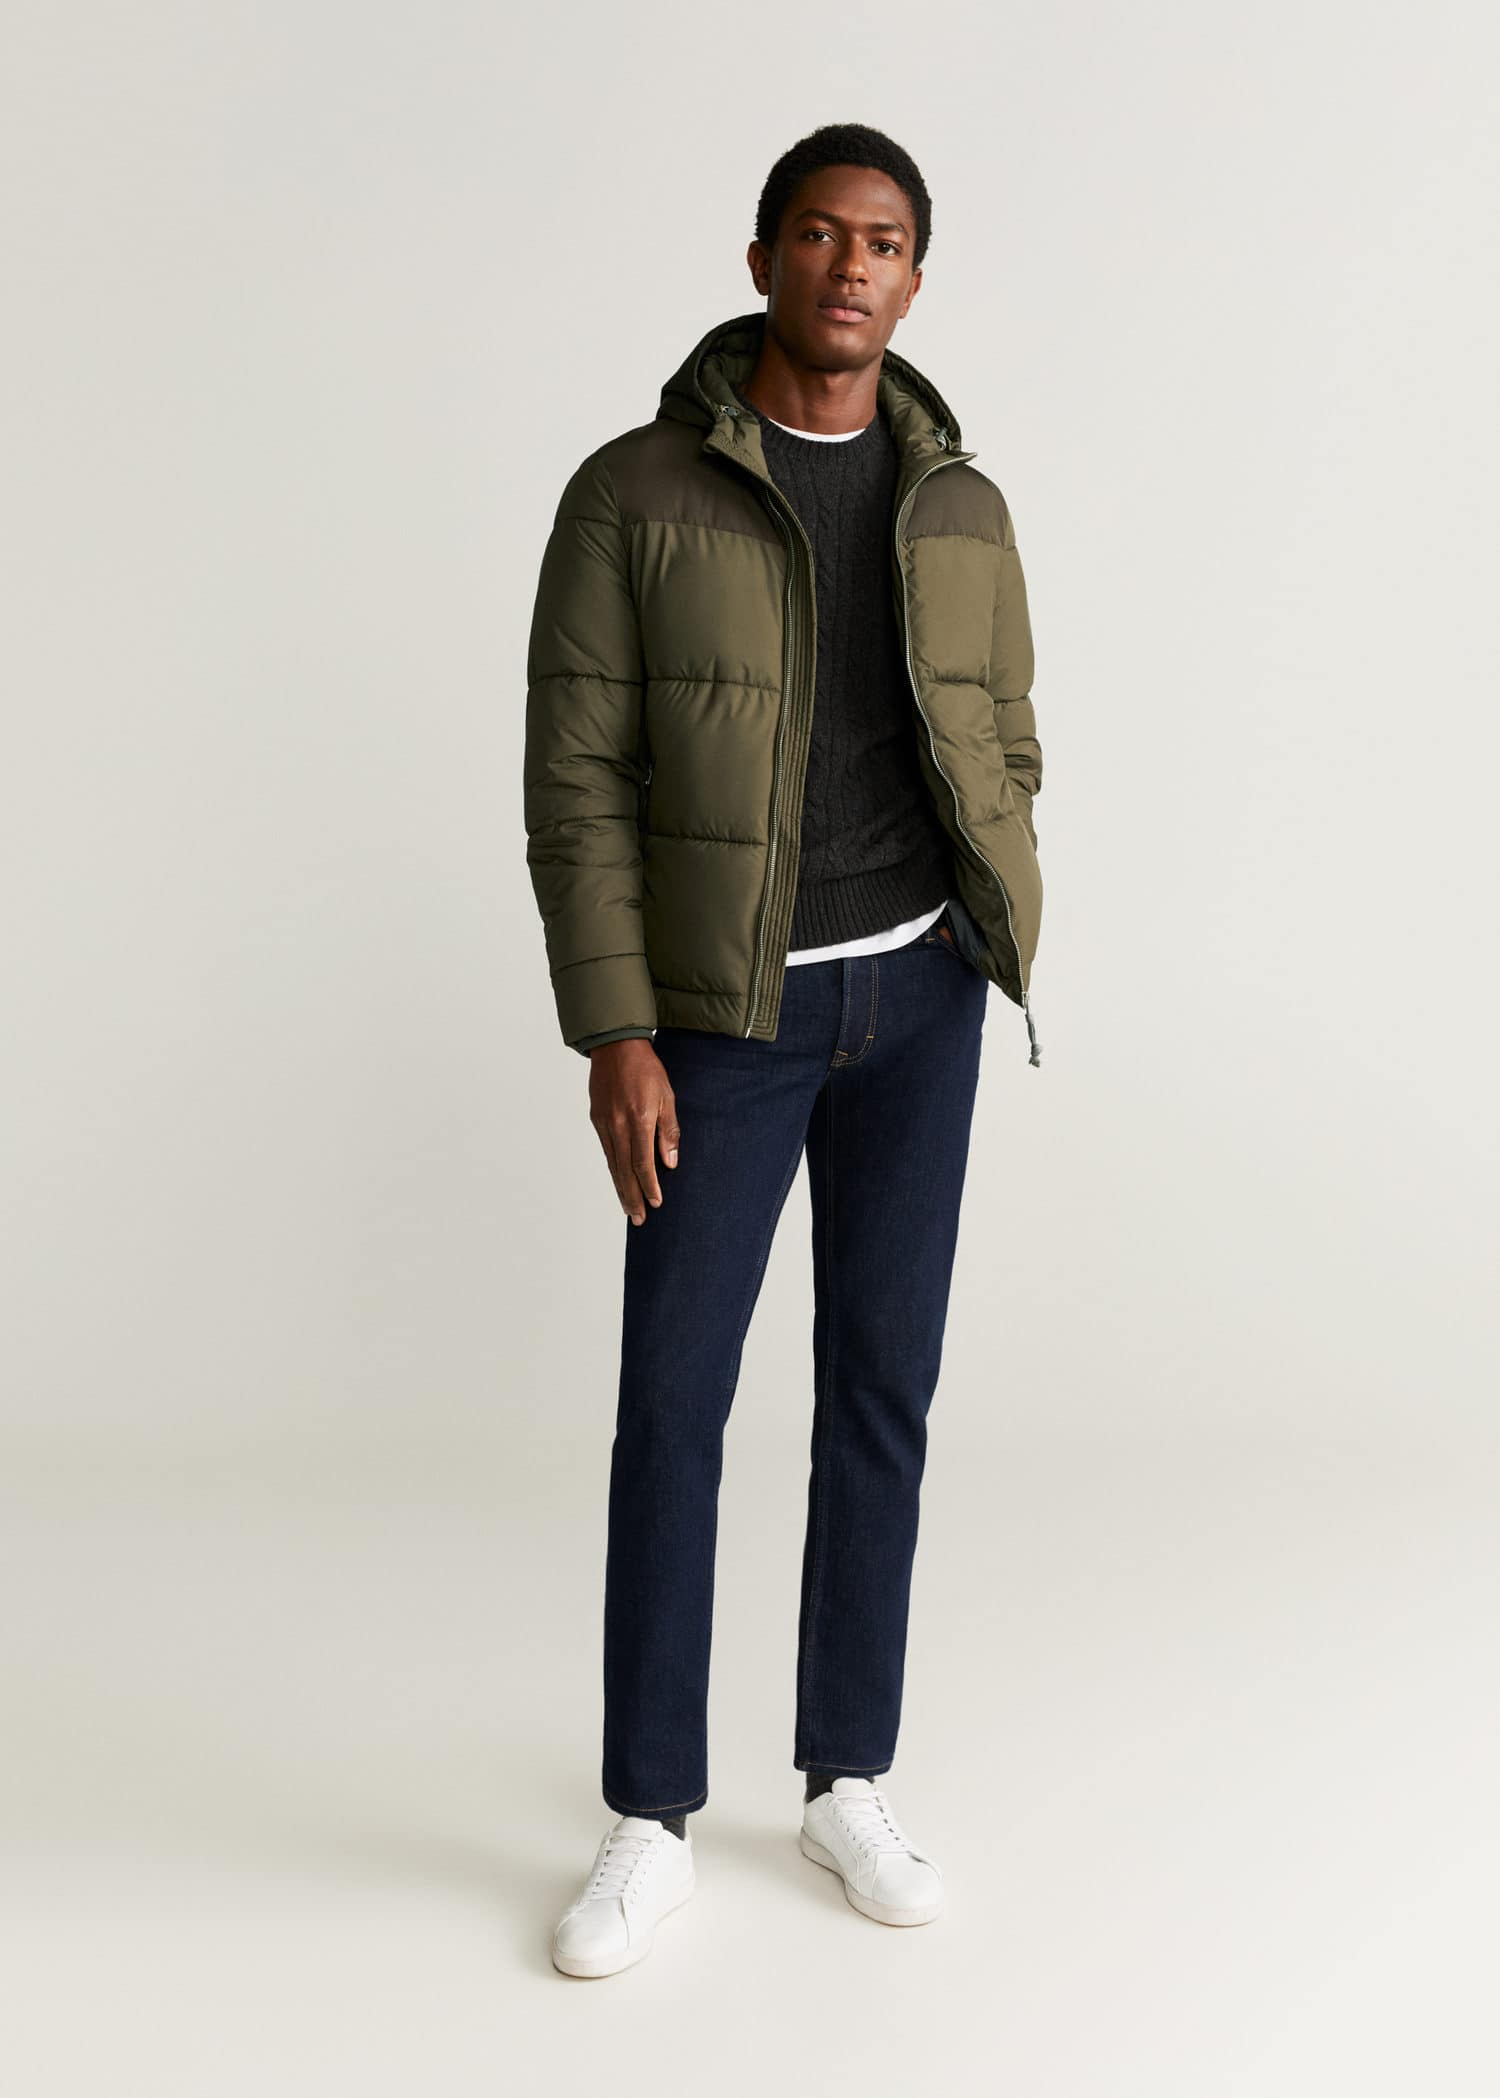 style a puffer jacket